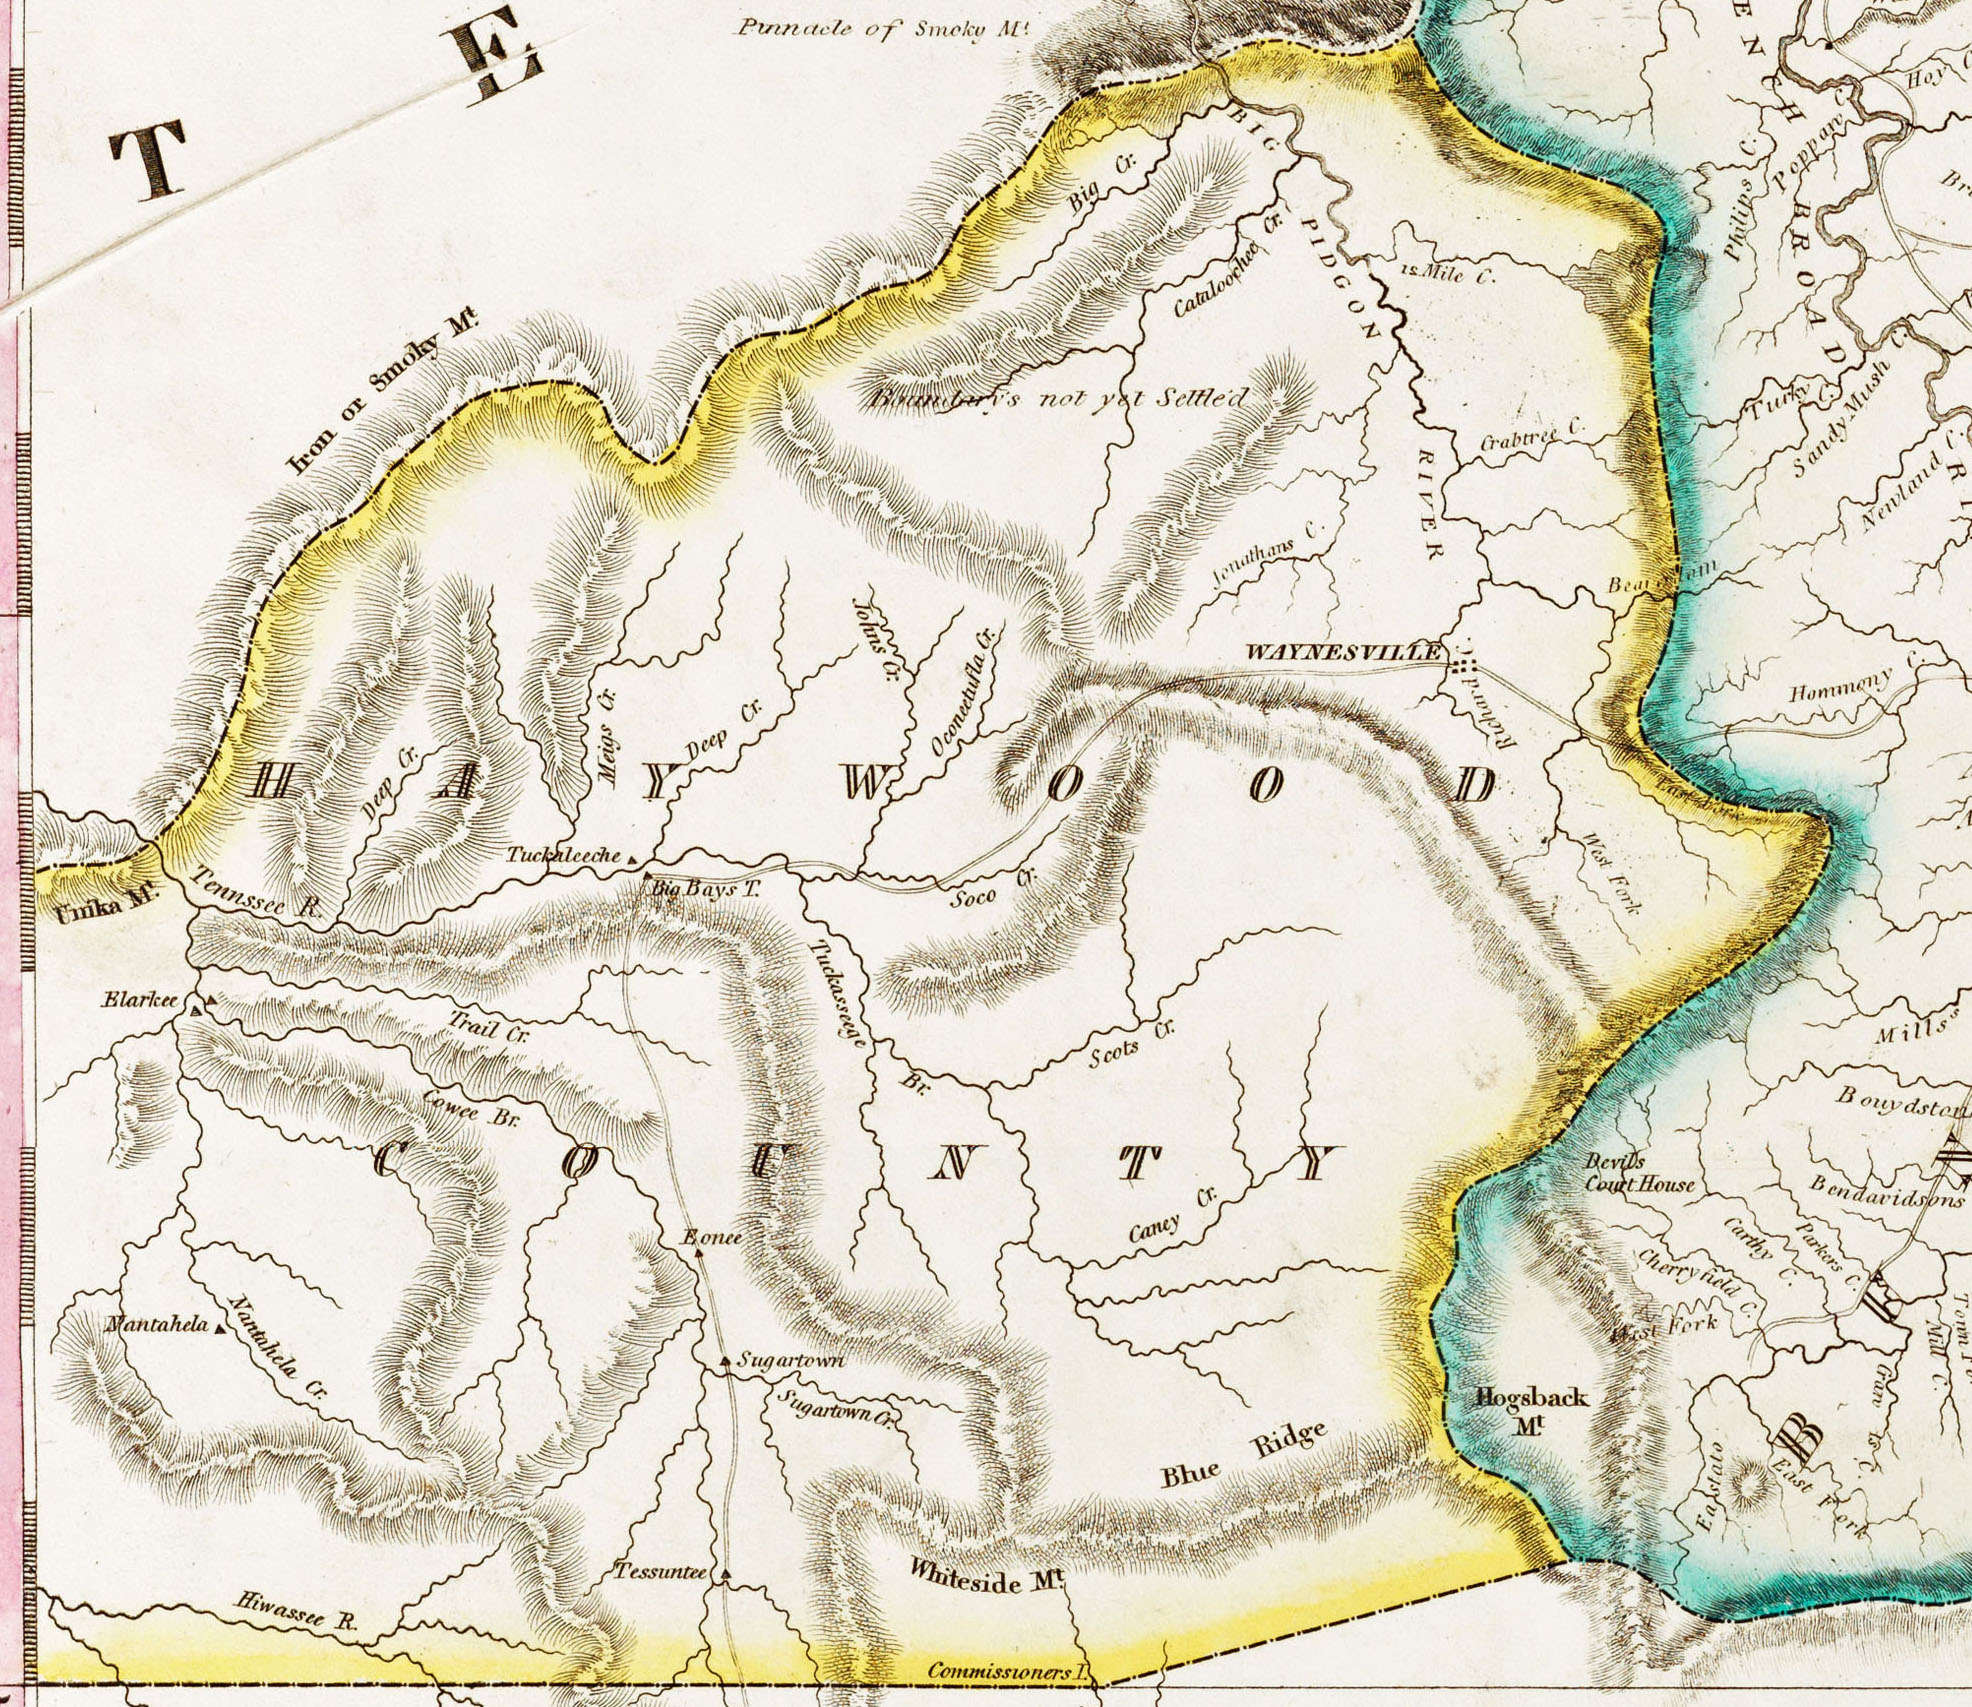 1826 Revised Edition Of Price Strother Map Bibliotheque Nationale De France Paris